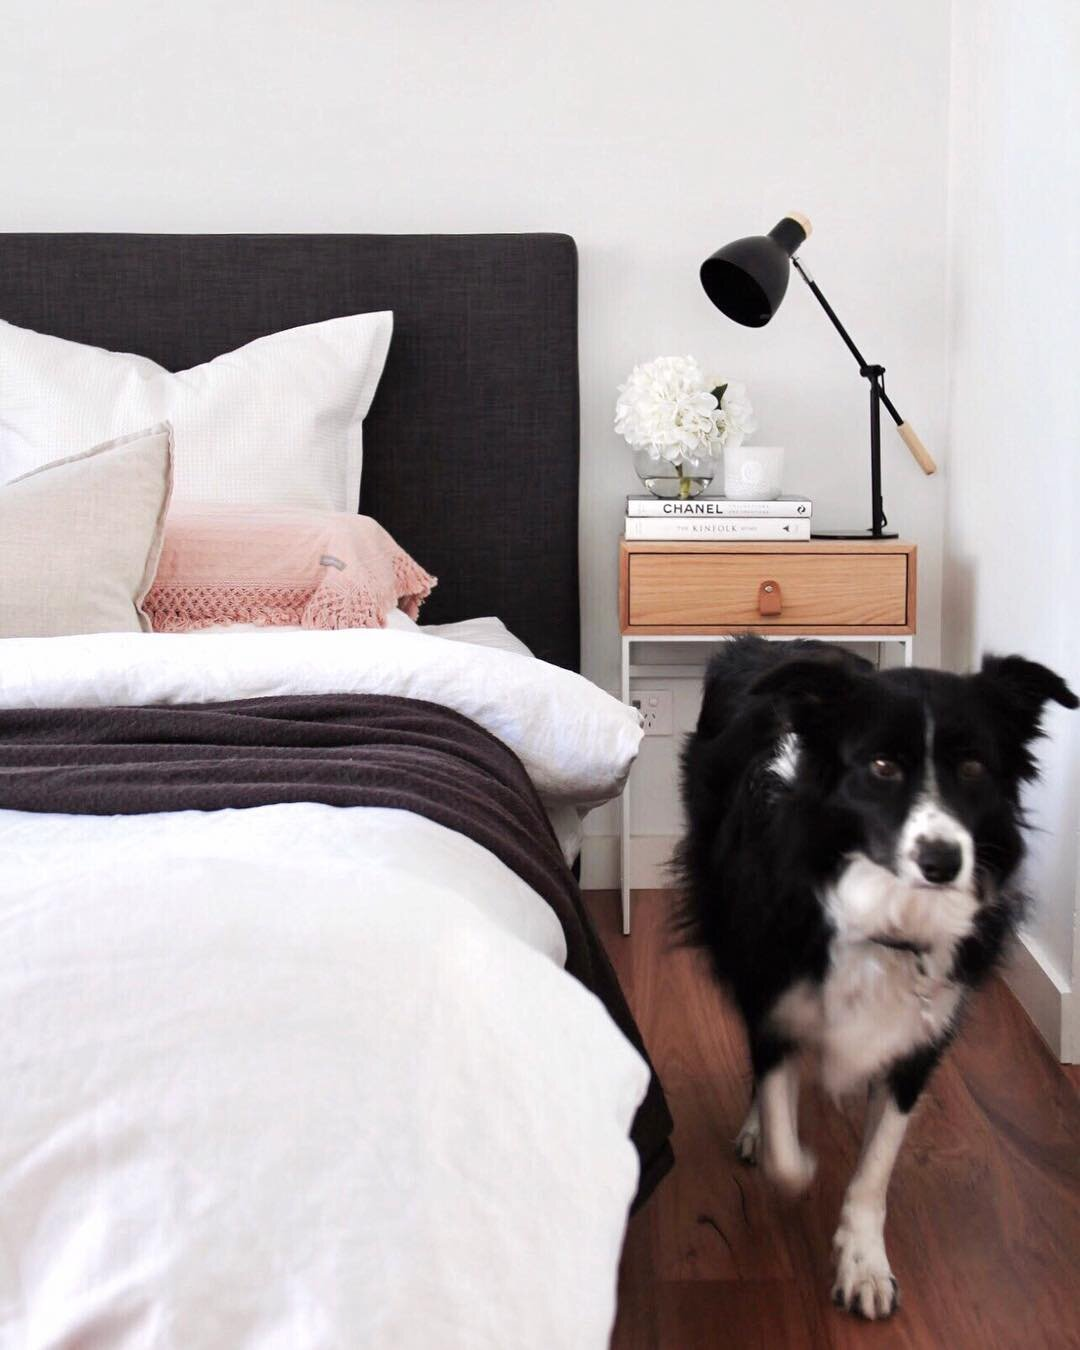 MIchelle's fur baby is very much at home in the bedroom. Source:  @everyday.home